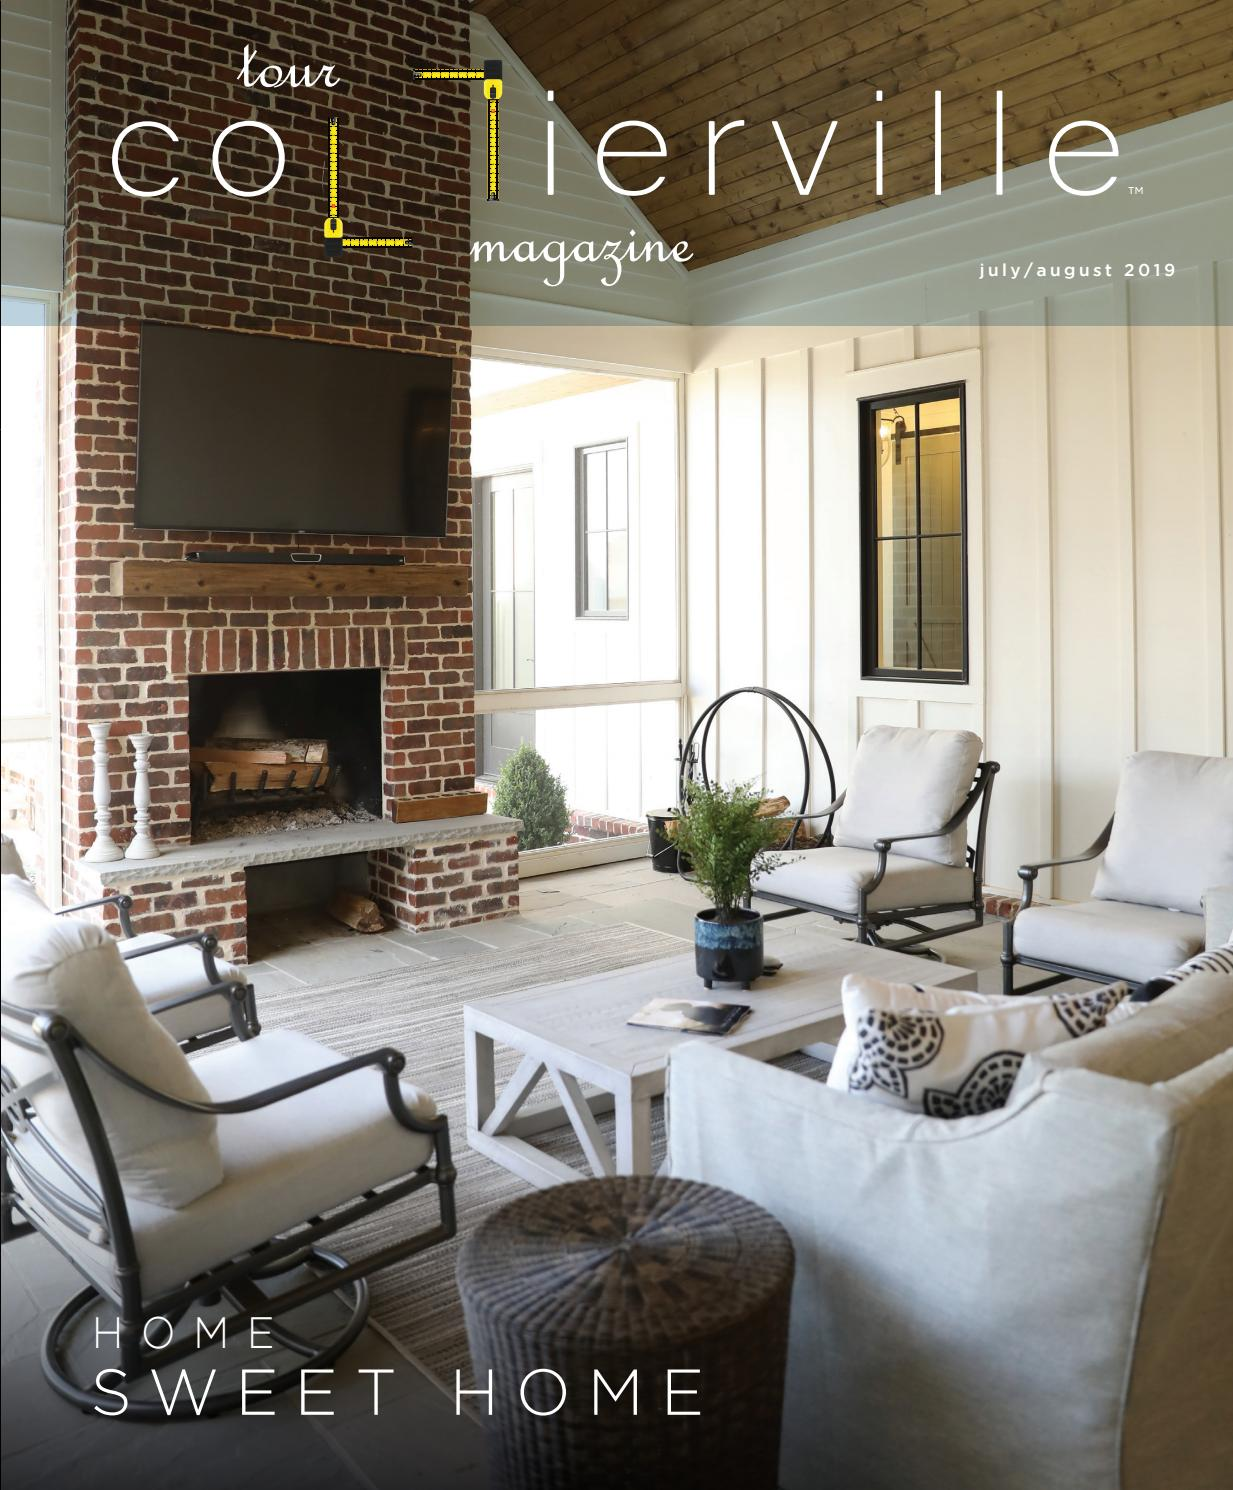 Tour Collierville Magazine July August 2019 By Tour Collierville Magazine Issuu